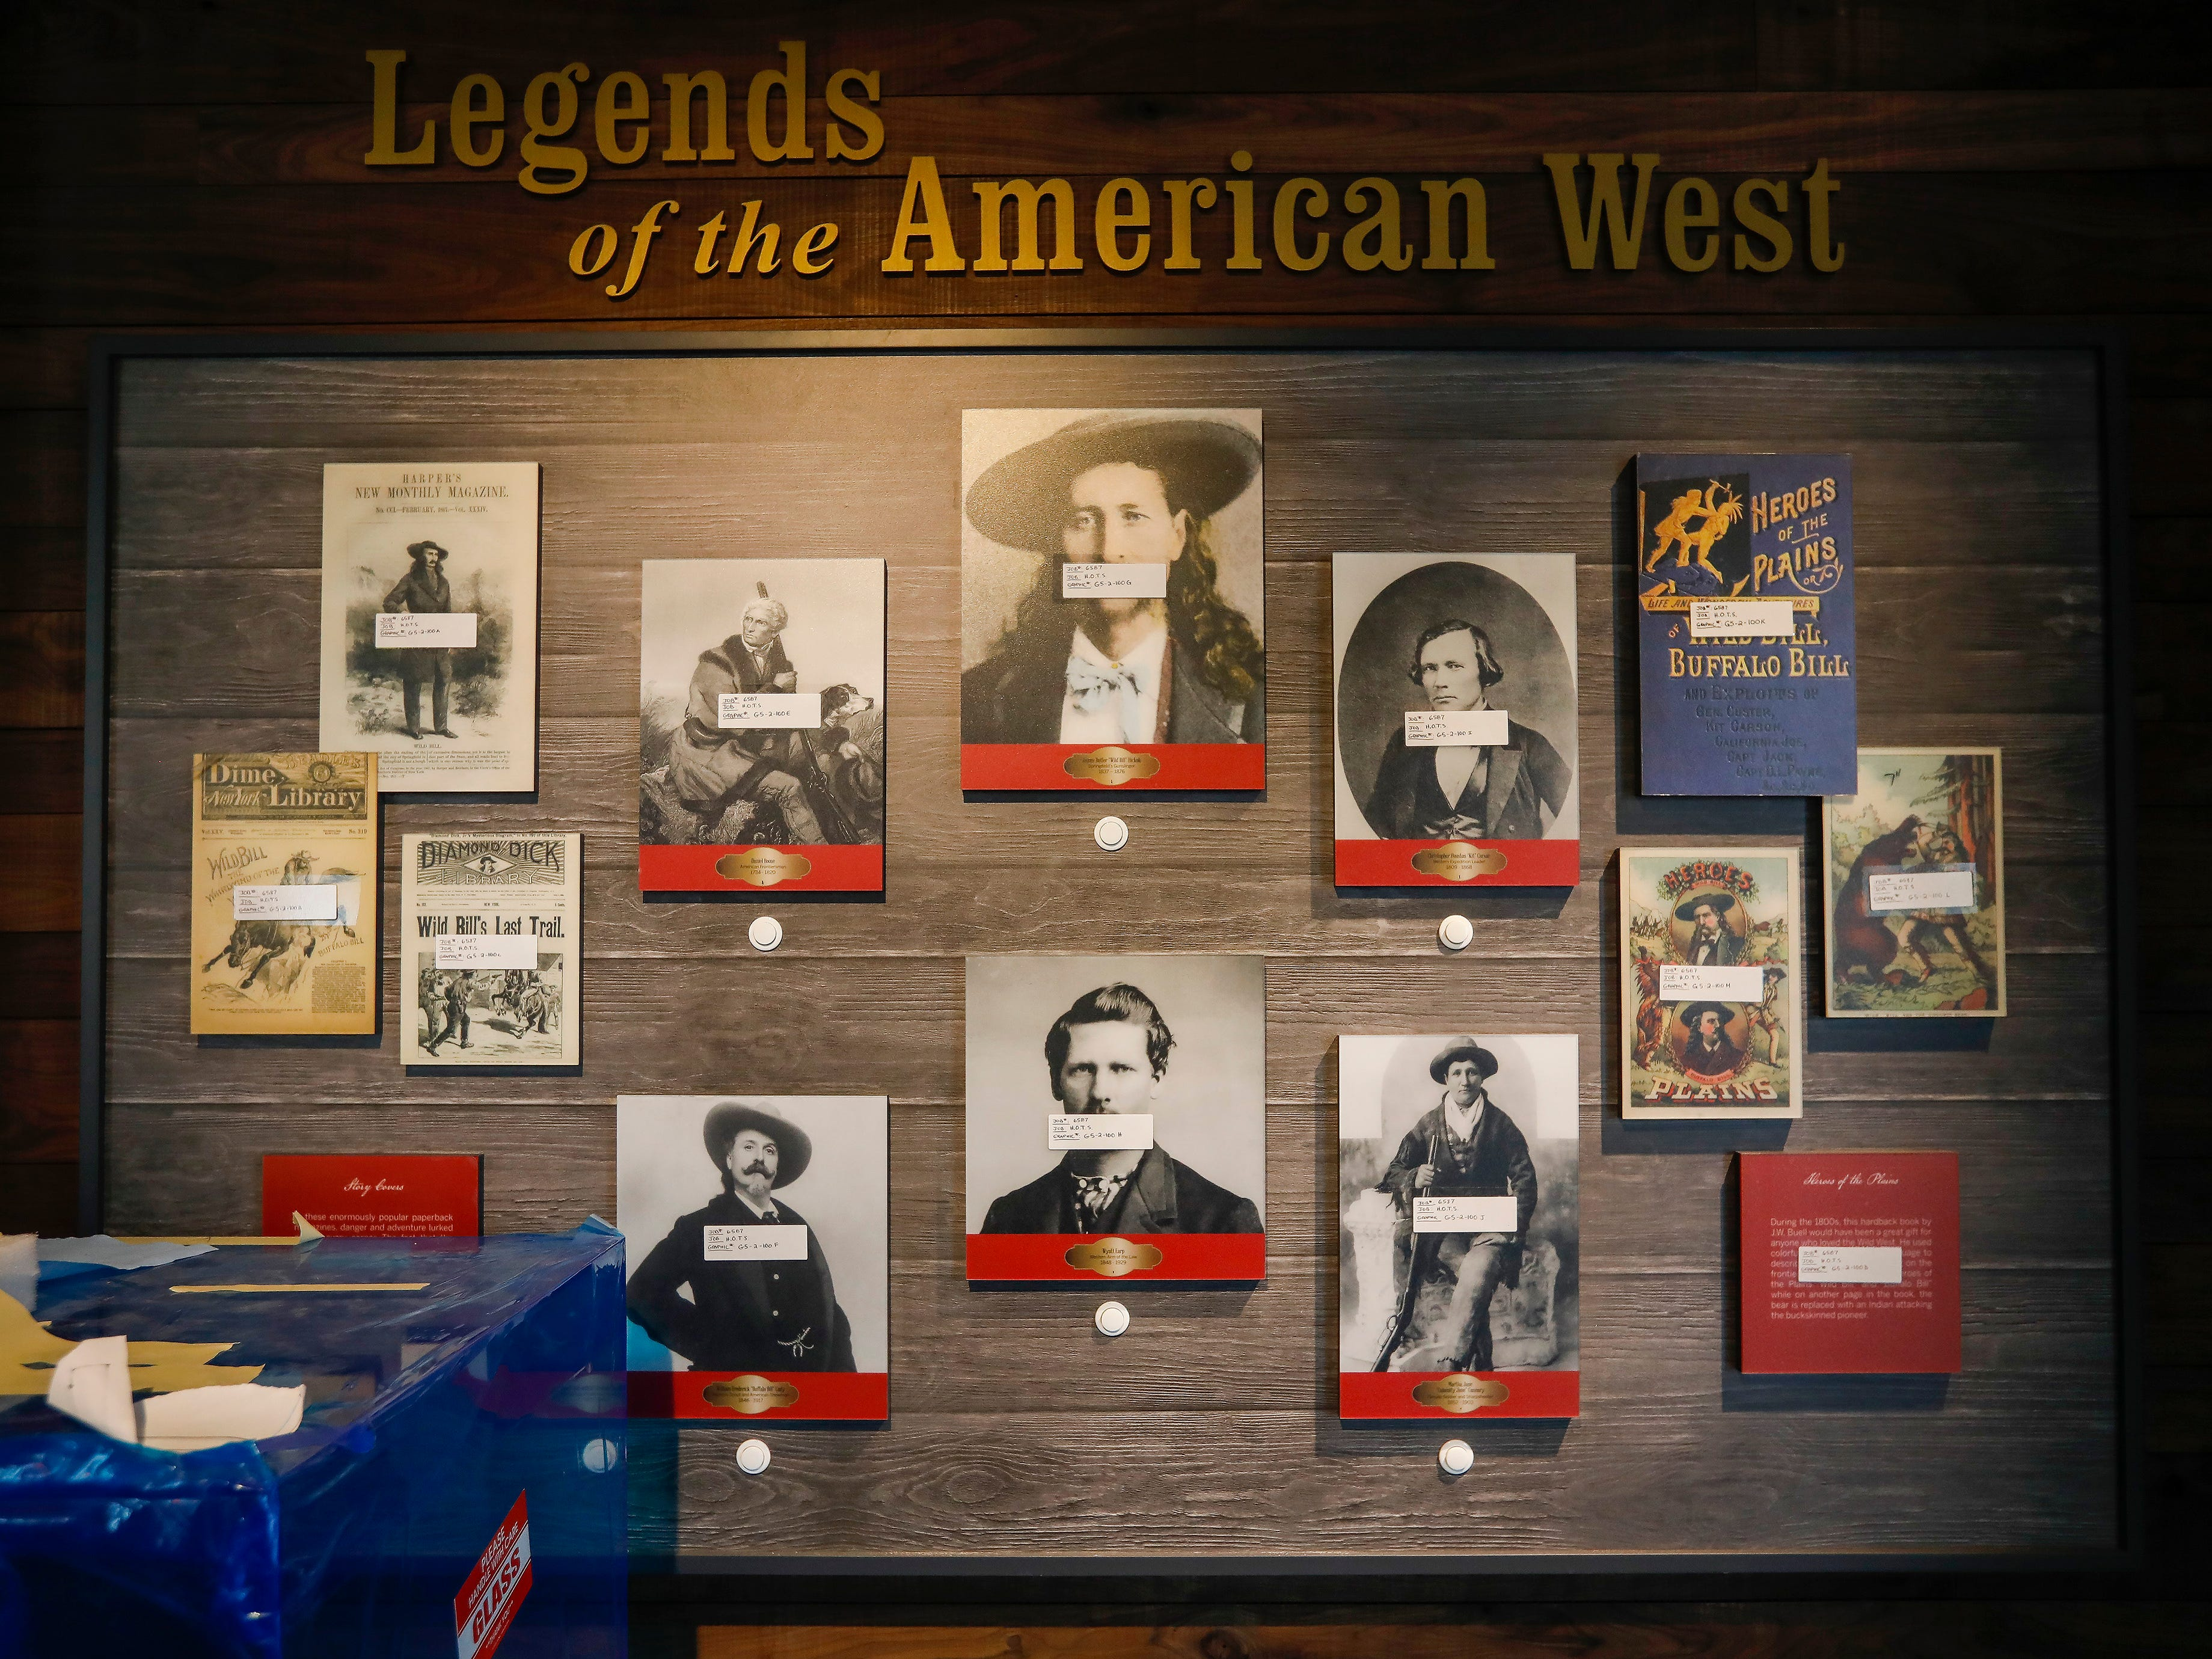 Audio commentary will accompany the historical photos on this display at the History Museum on the Square.